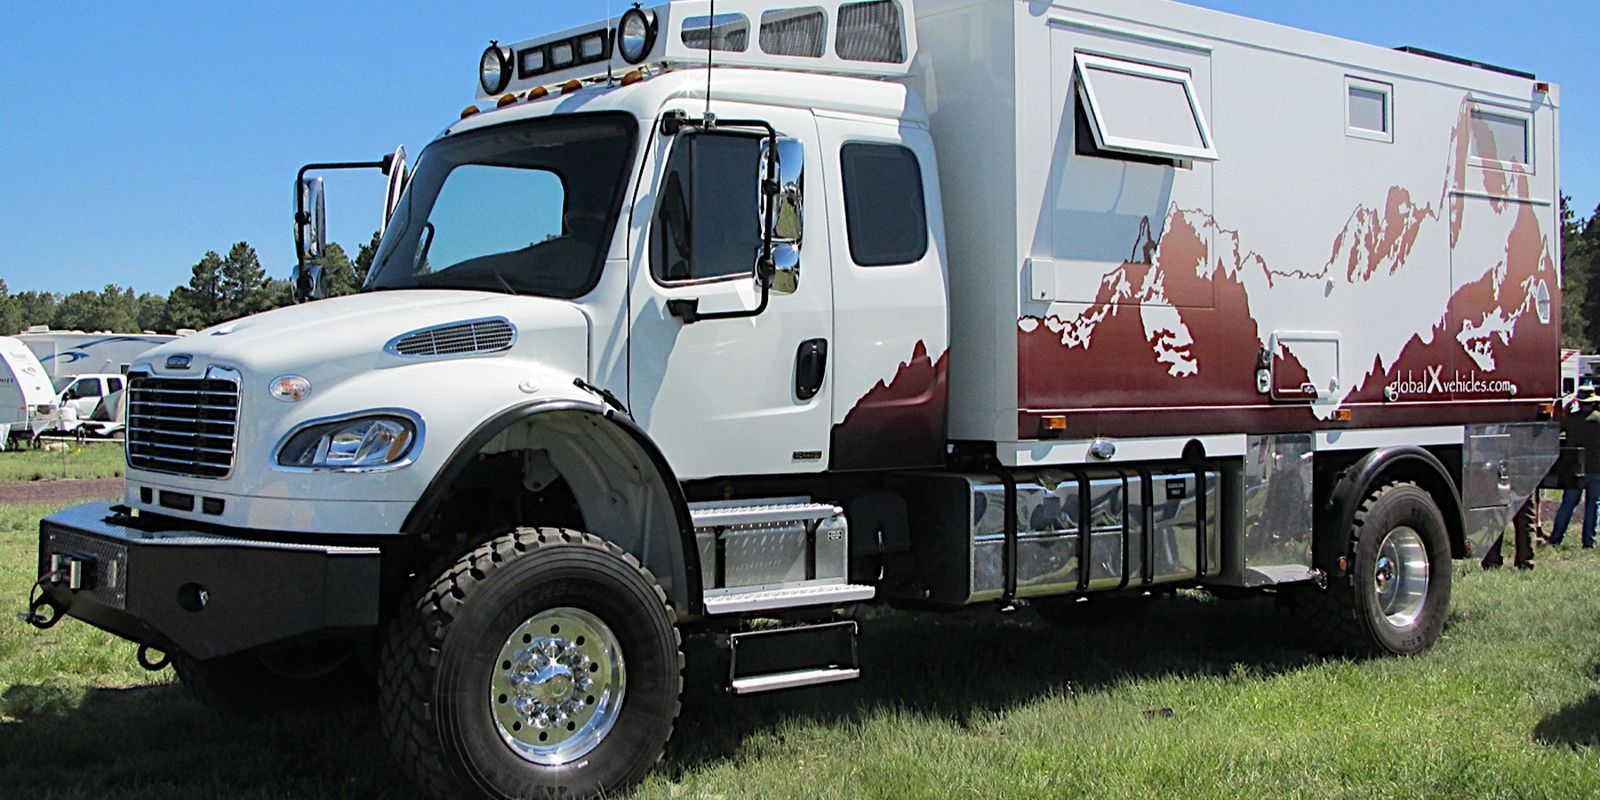 Half Fire Half Water Car Wallpapers 14 Extreme Campers Built For Off Roading